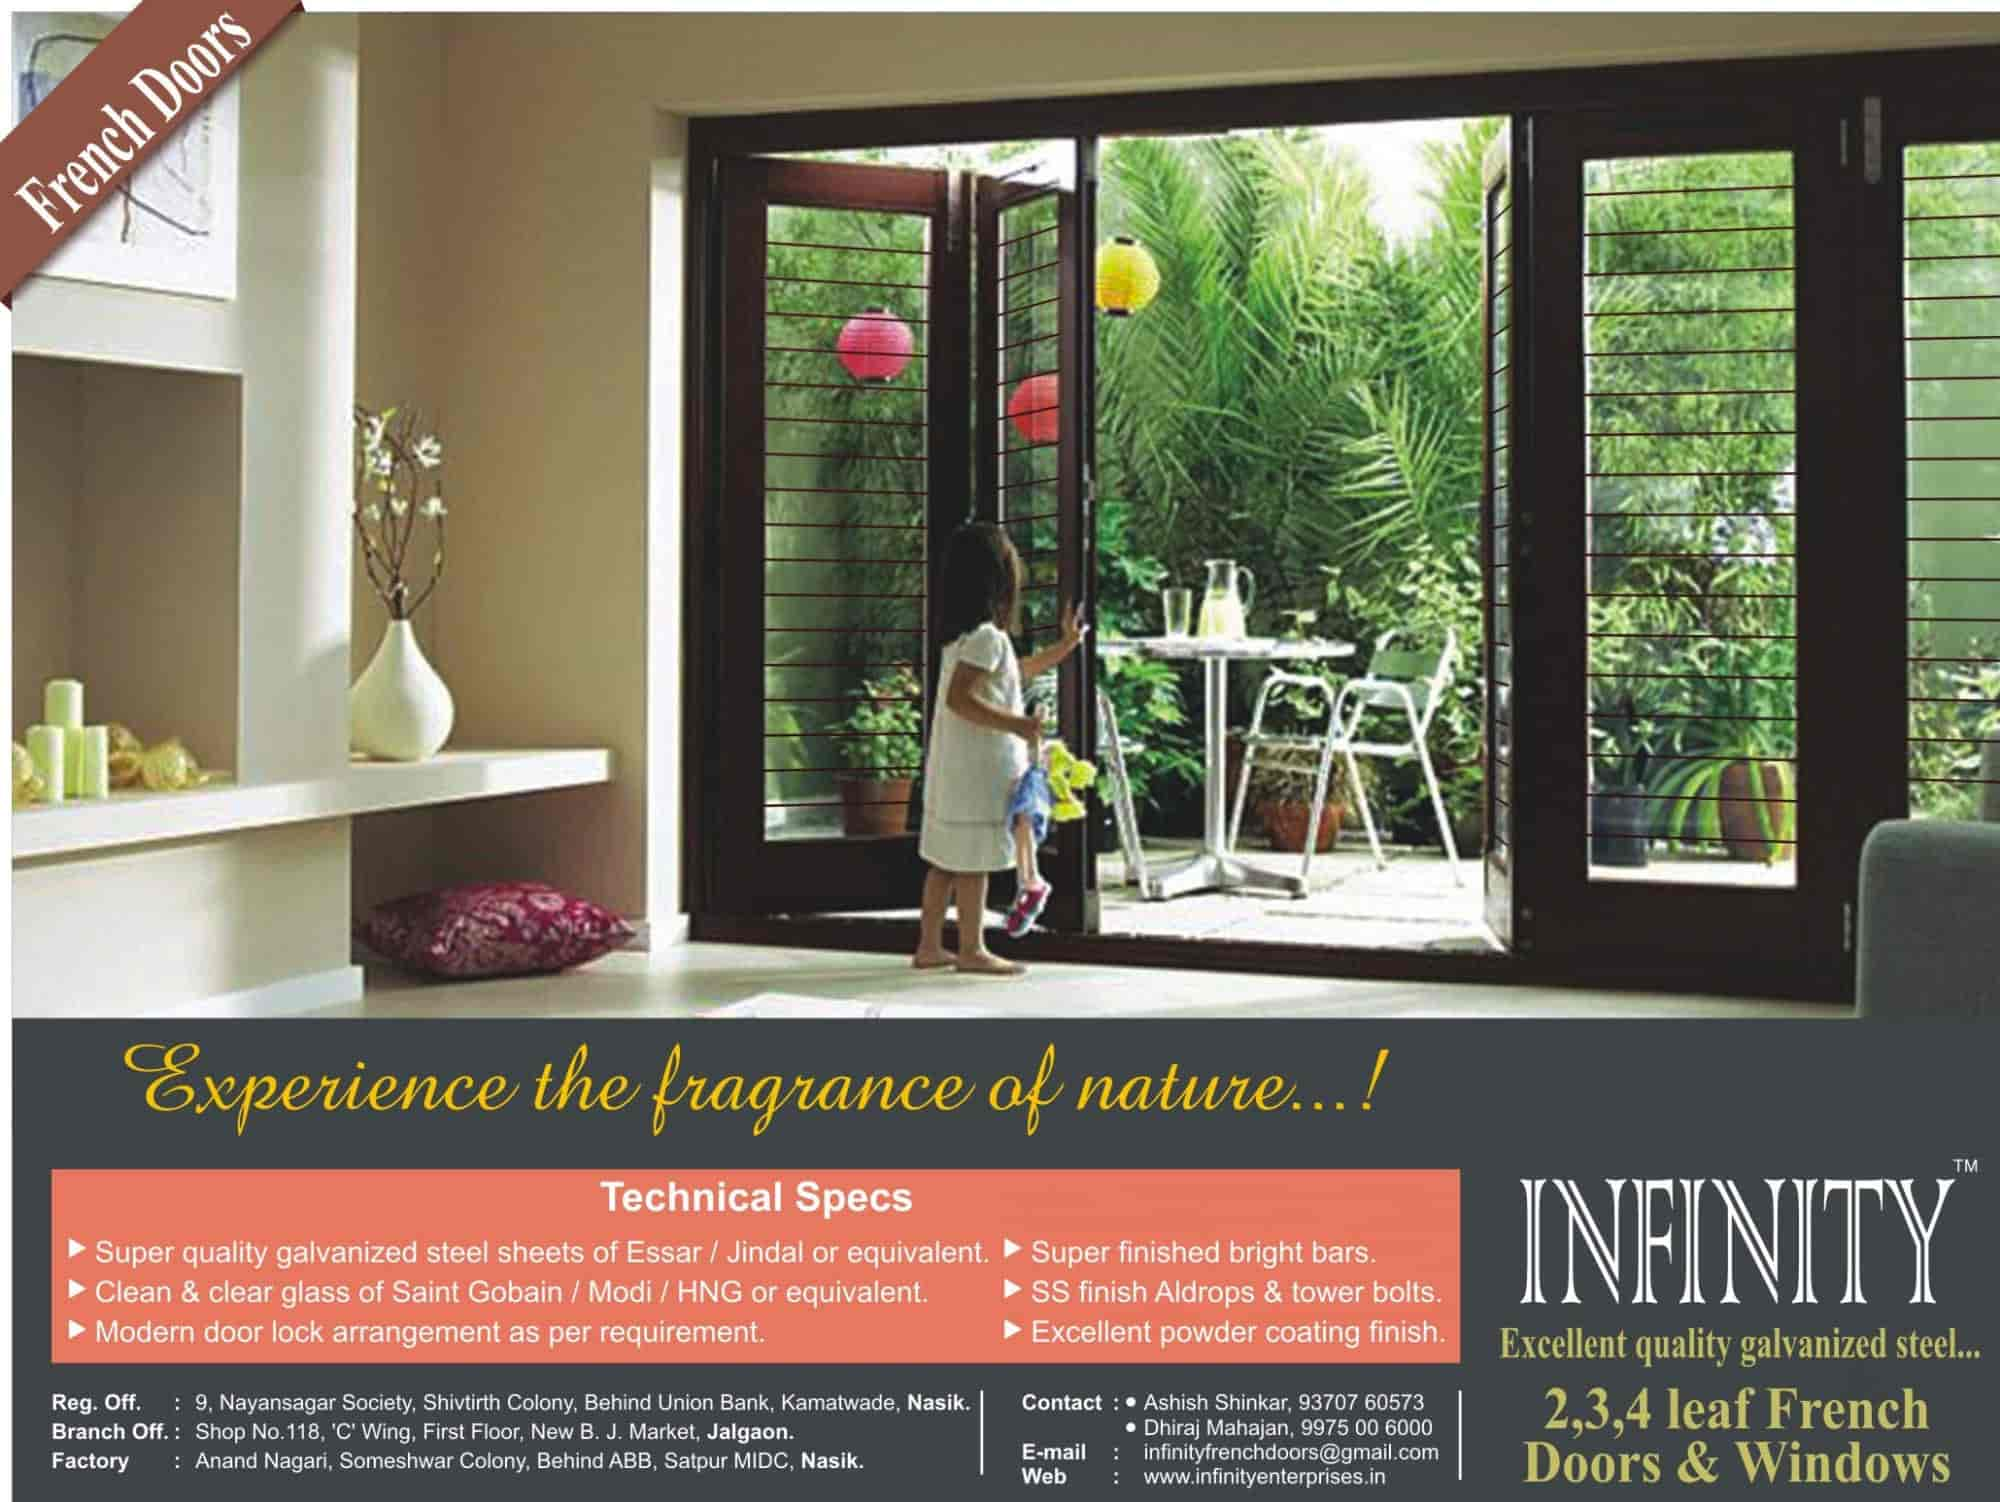 & Infinity Enterprises - Door Manufacturers in Nashik - Justdial pezcame.com